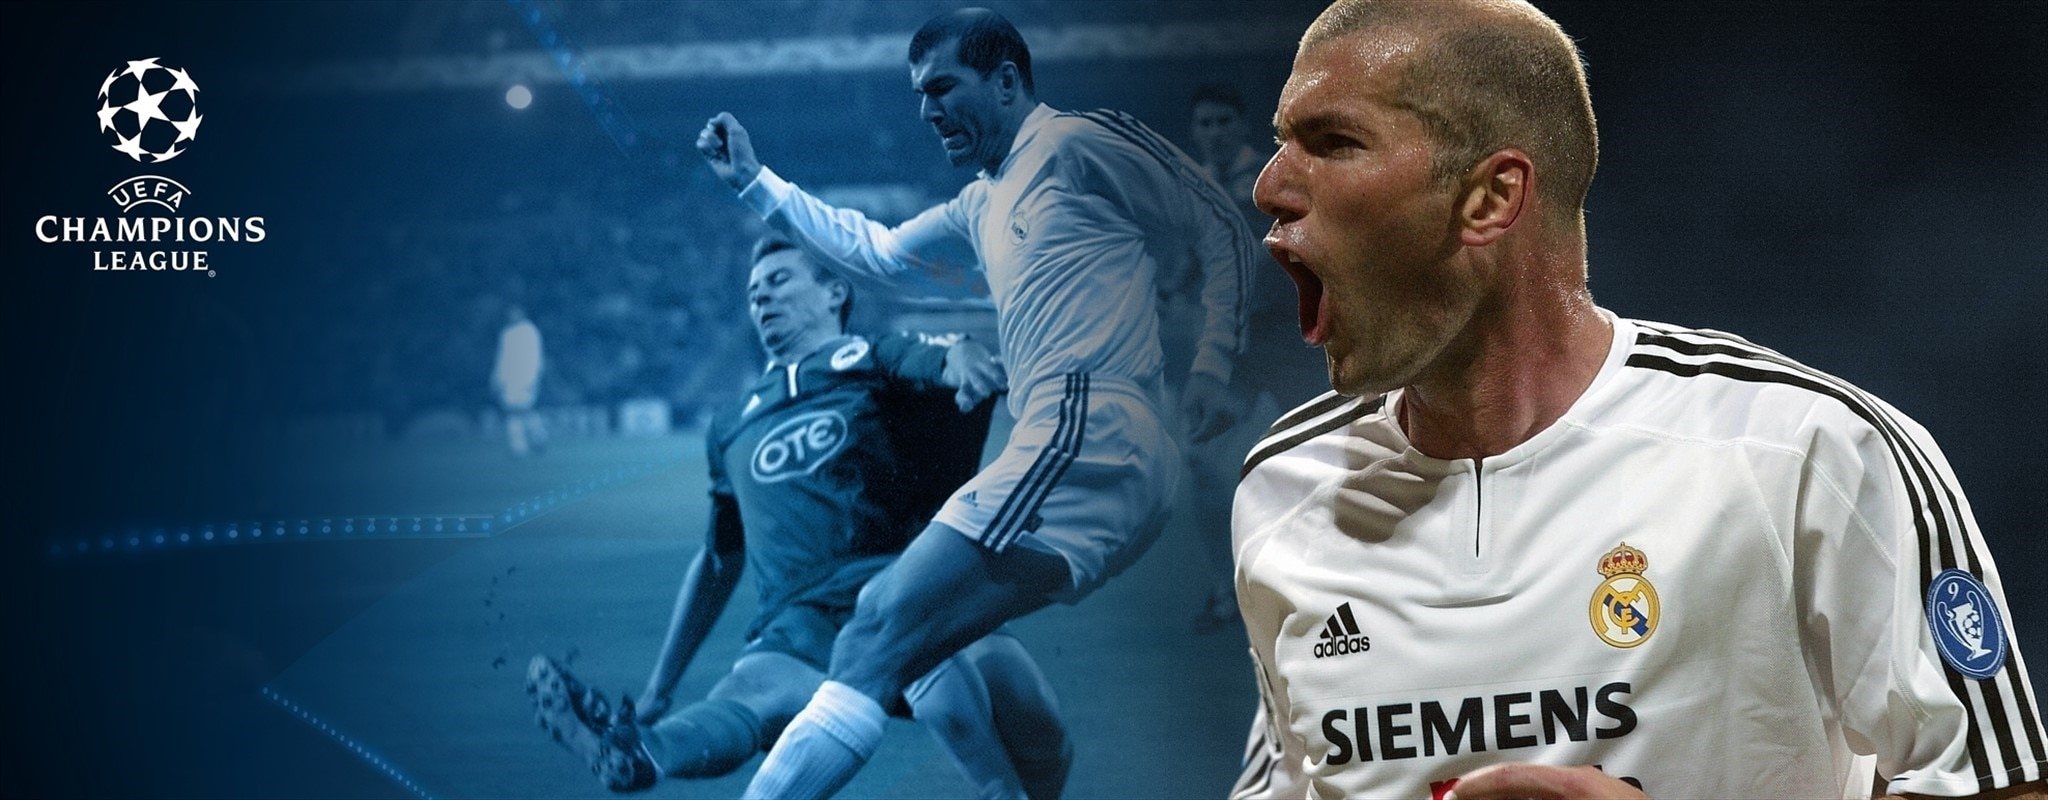 Zidane's UEFA Champions League career at a glance